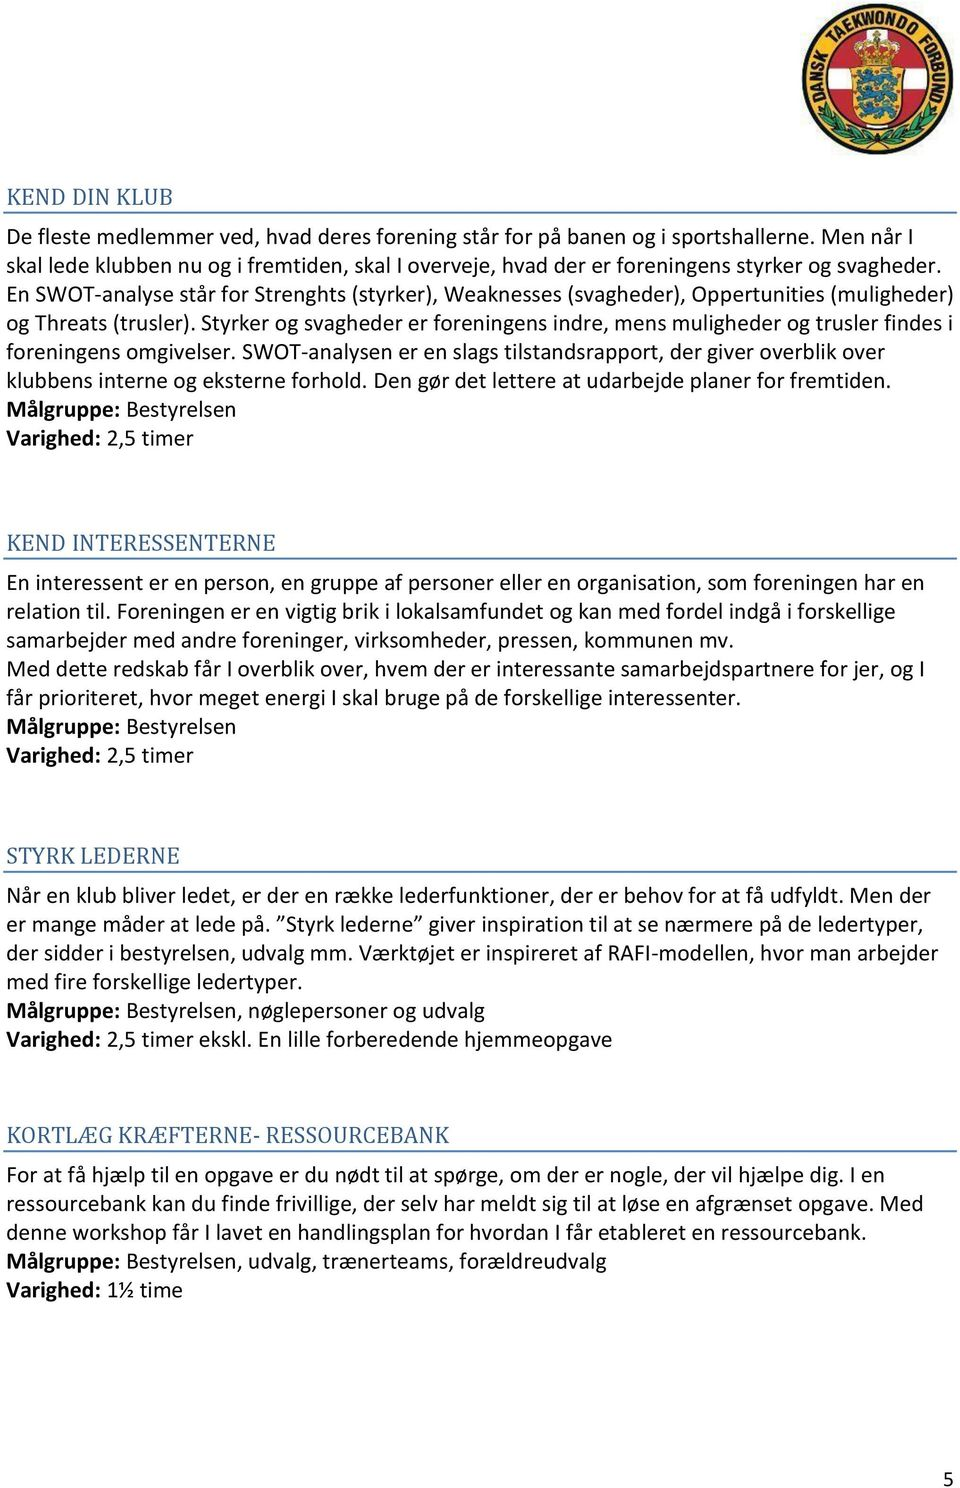 En SWOT-analyse står for Strenghts (styrker), Weaknesses (svagheder), Oppertunities (muligheder) og Threats (trusler).